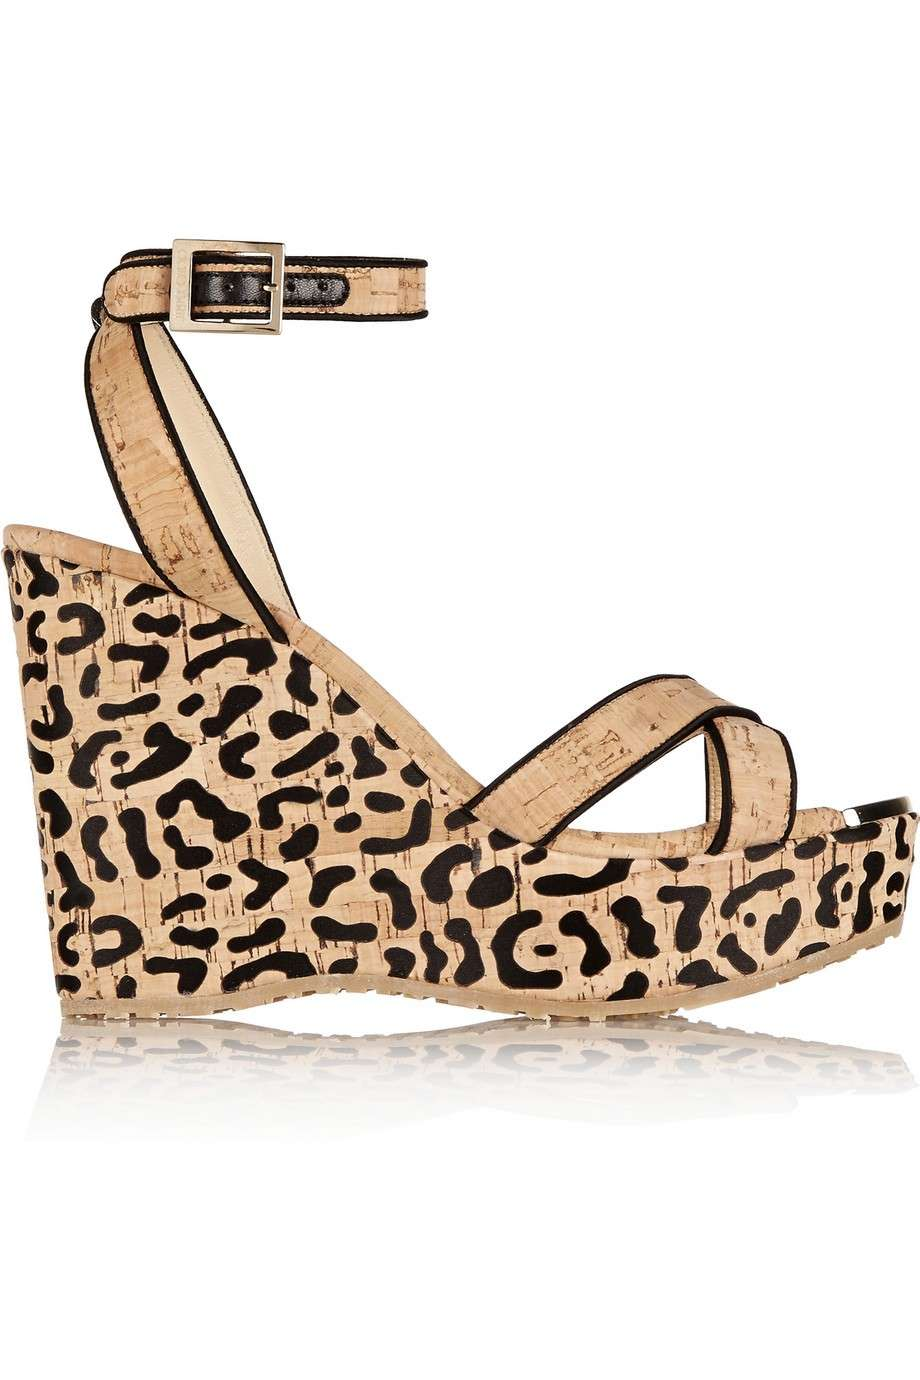 Zeppe Jimmy Choo